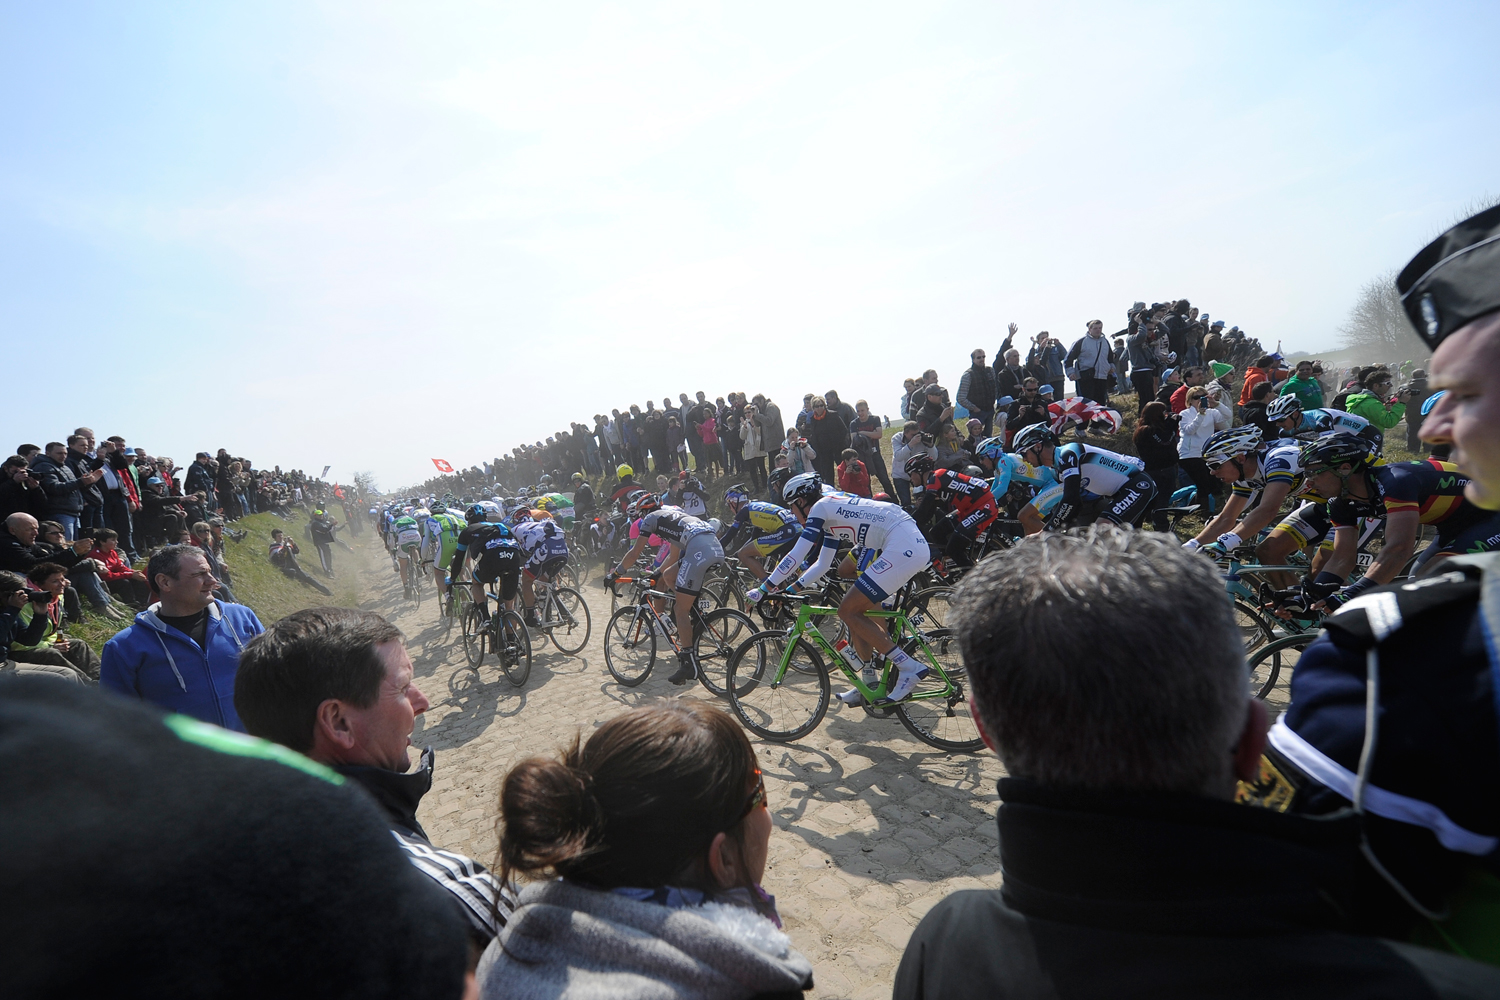 Spectators throng to corners, where riders are forced to slow down, and crashes often occur. Hushovd took himself out of contention, and all but handed the race to Boonen, with some sloppy cornering in '09.